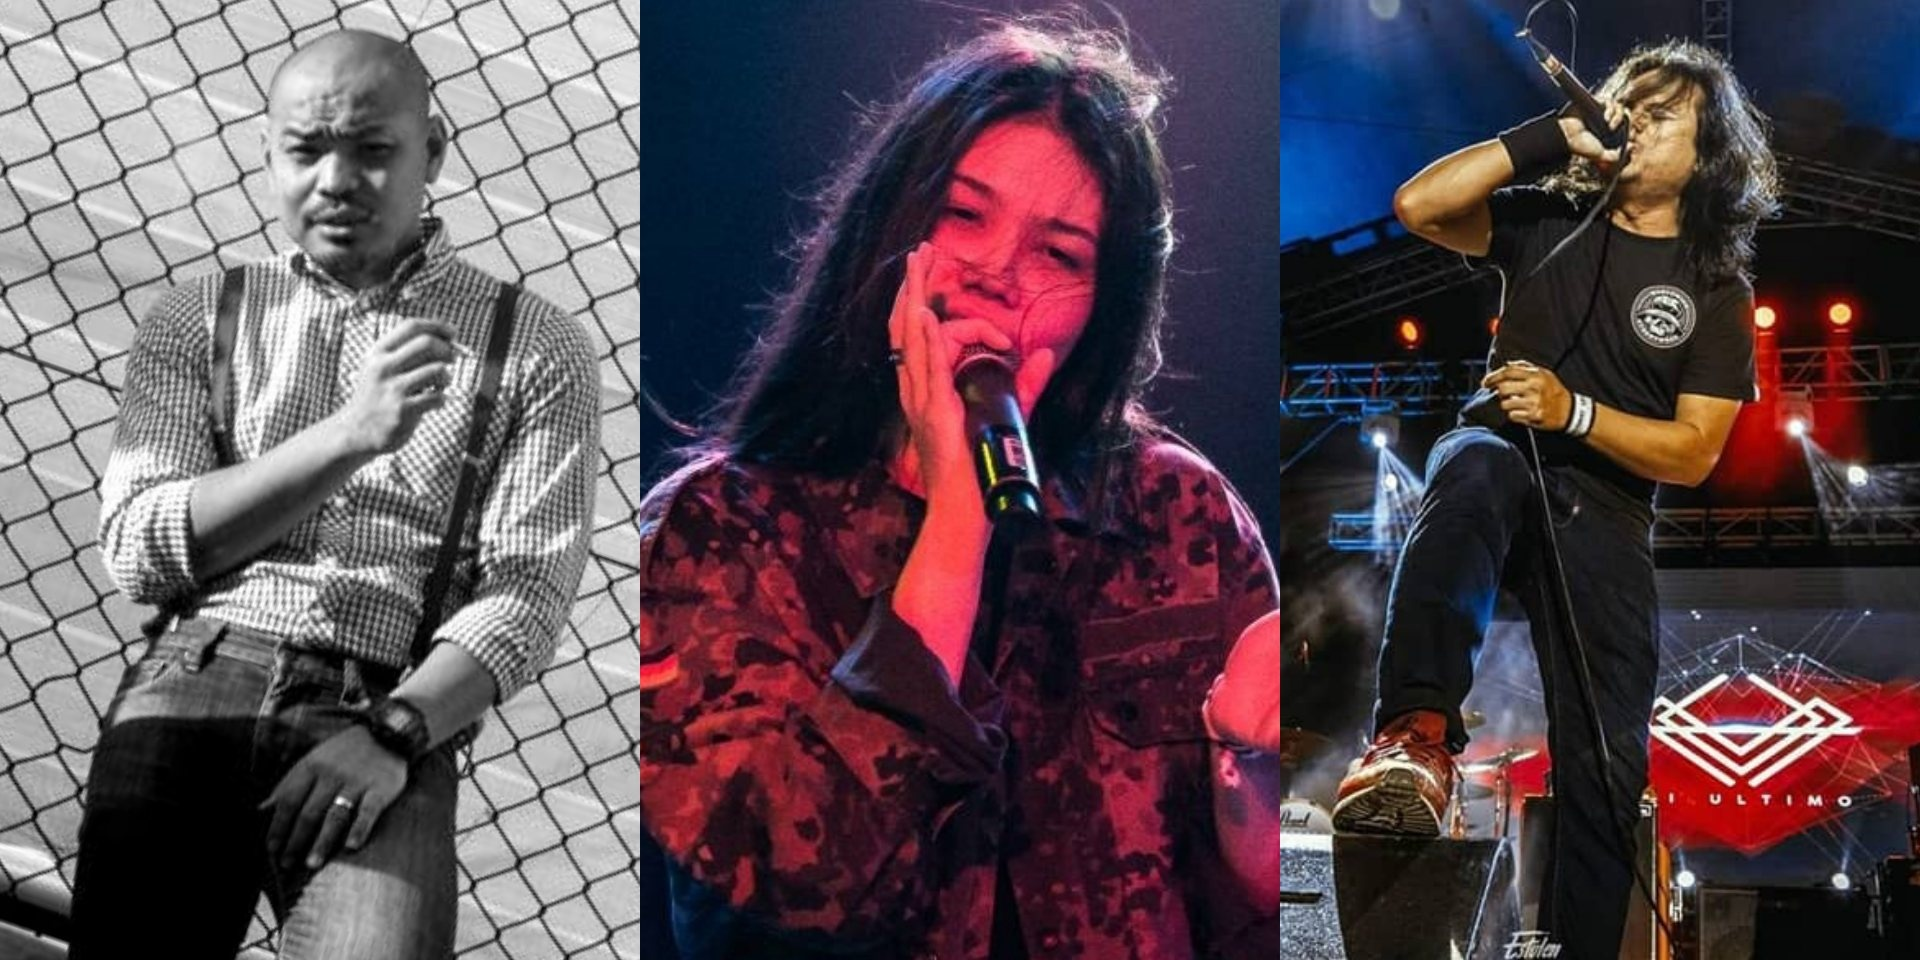 Vans Musicians Wanted 2019: Get inspired by past winners Generation 69, Shye and Mi Ultimo